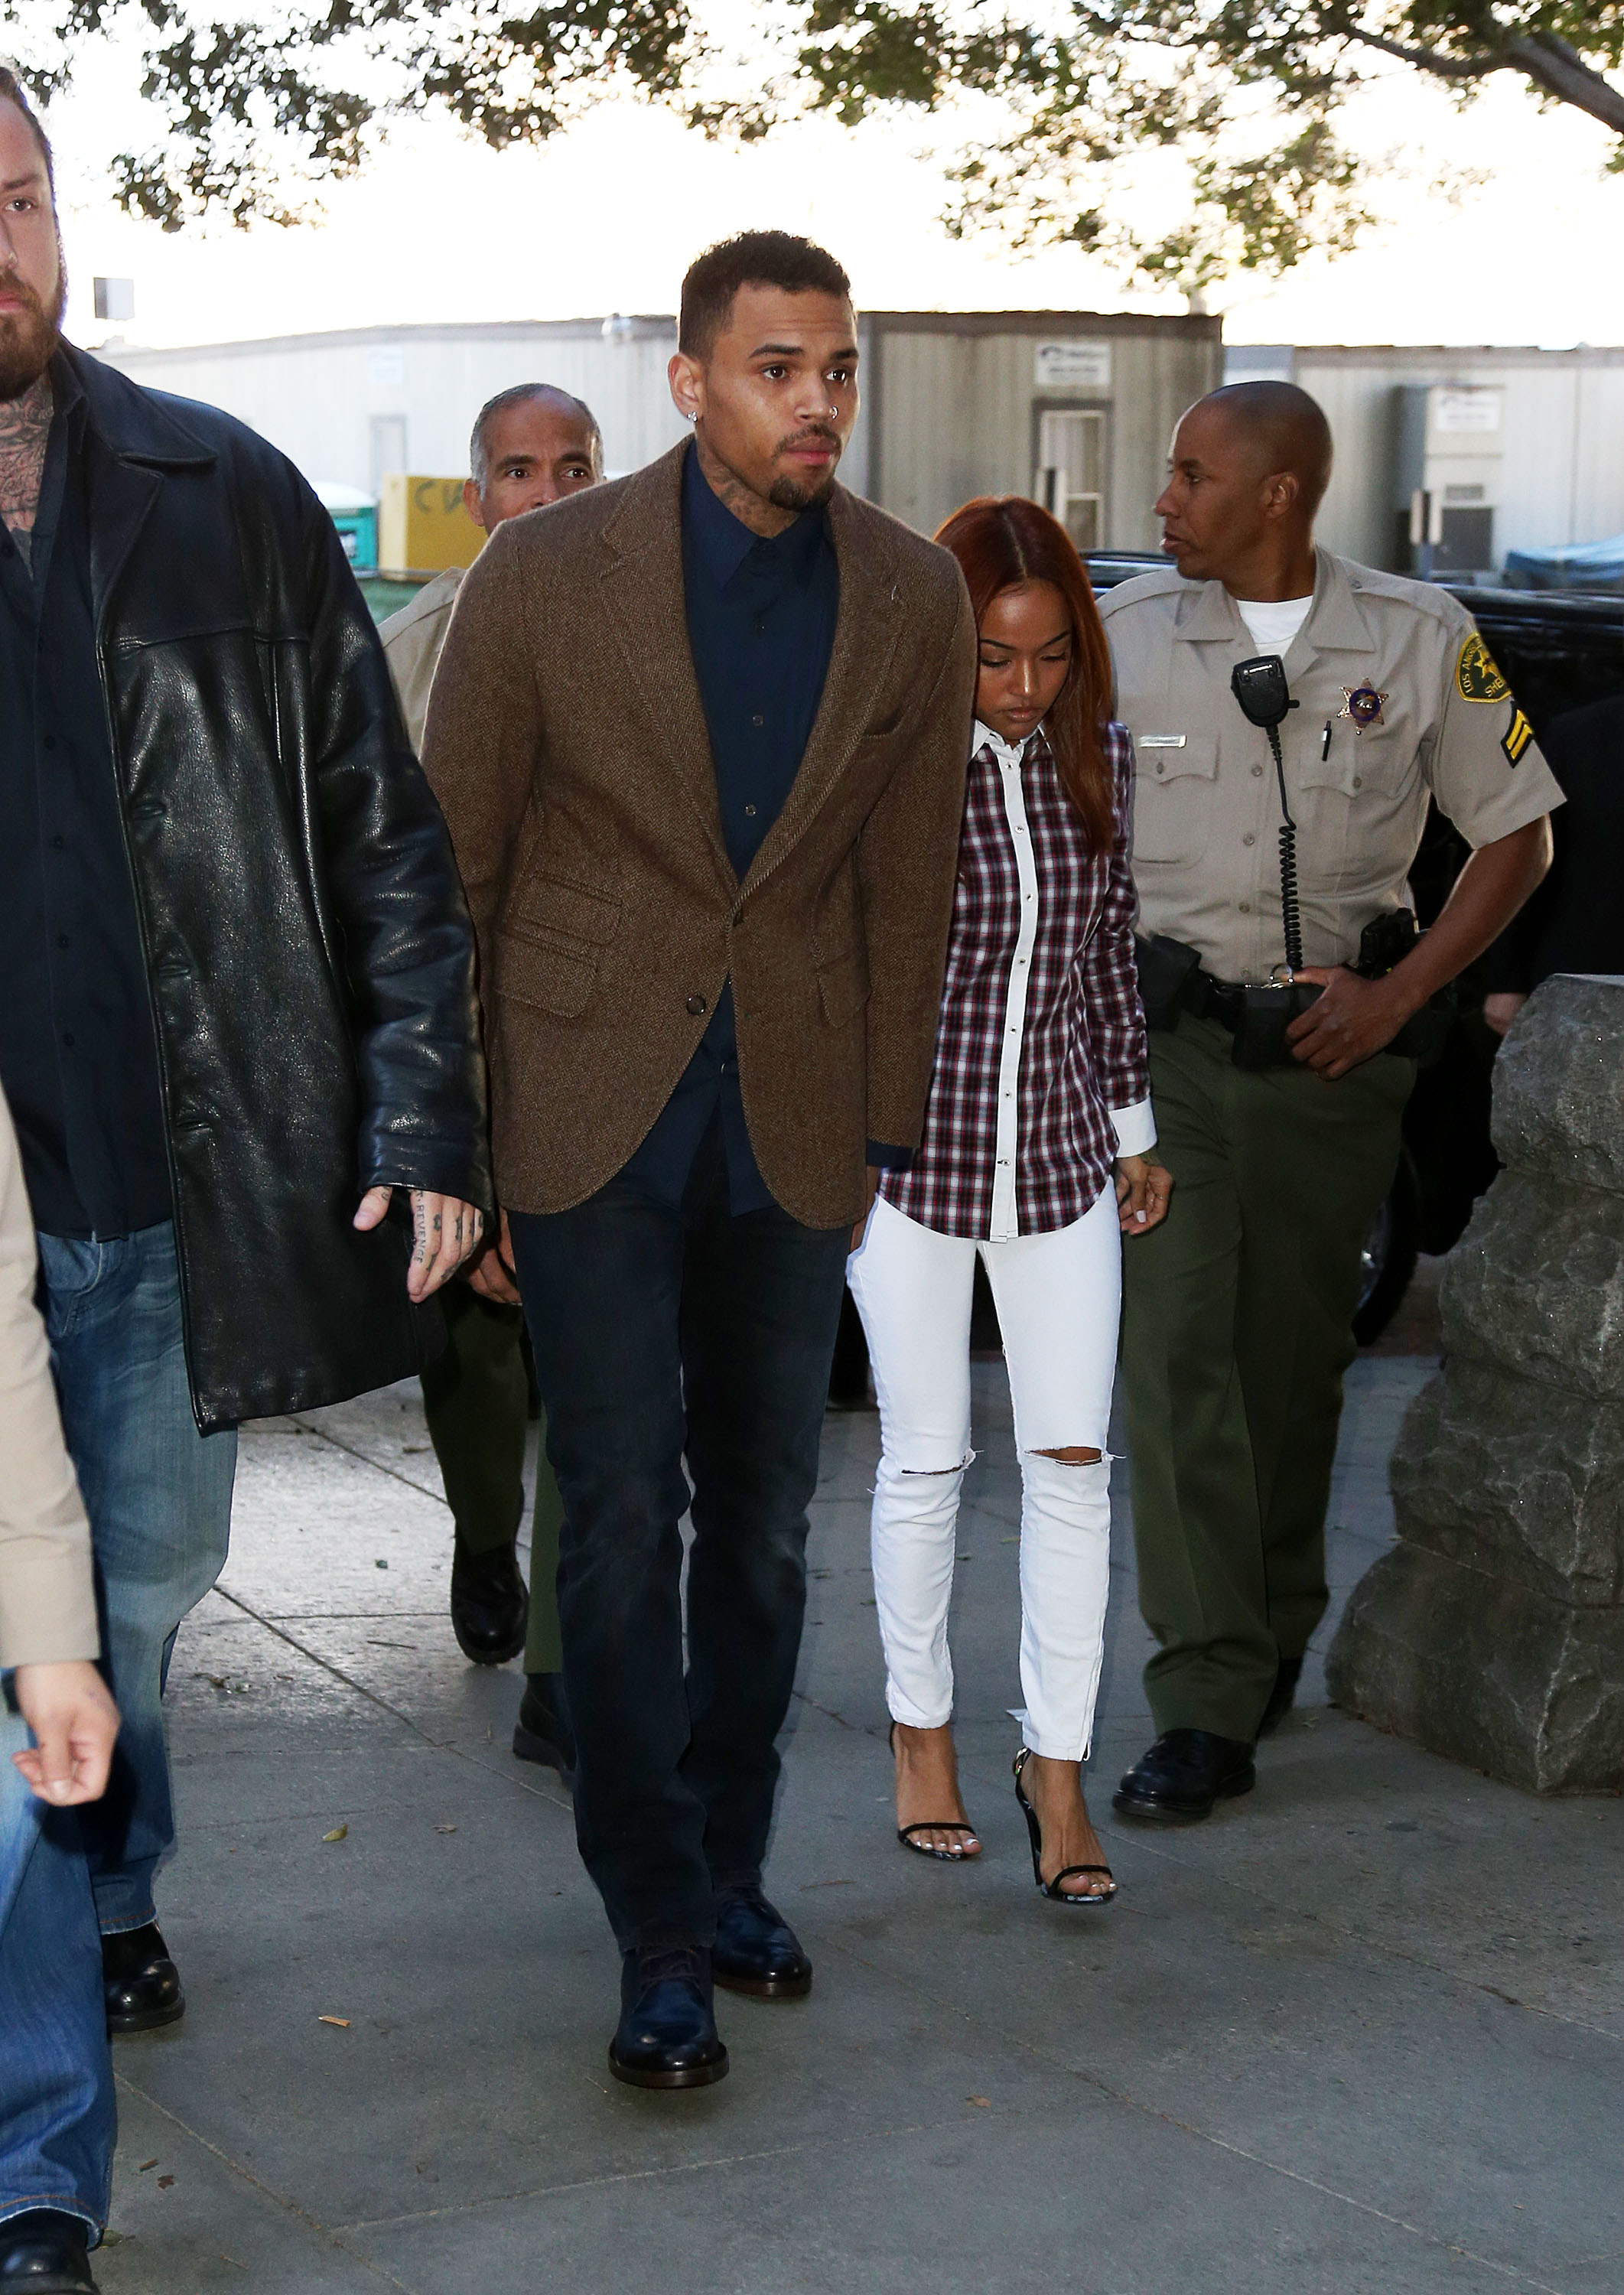 Recording artist Chris Brown enters the Los Angeles Courthouse on February 3, 2014 in Los Angeles, California. (Photo by Frederick M. Brown/Getty Images)